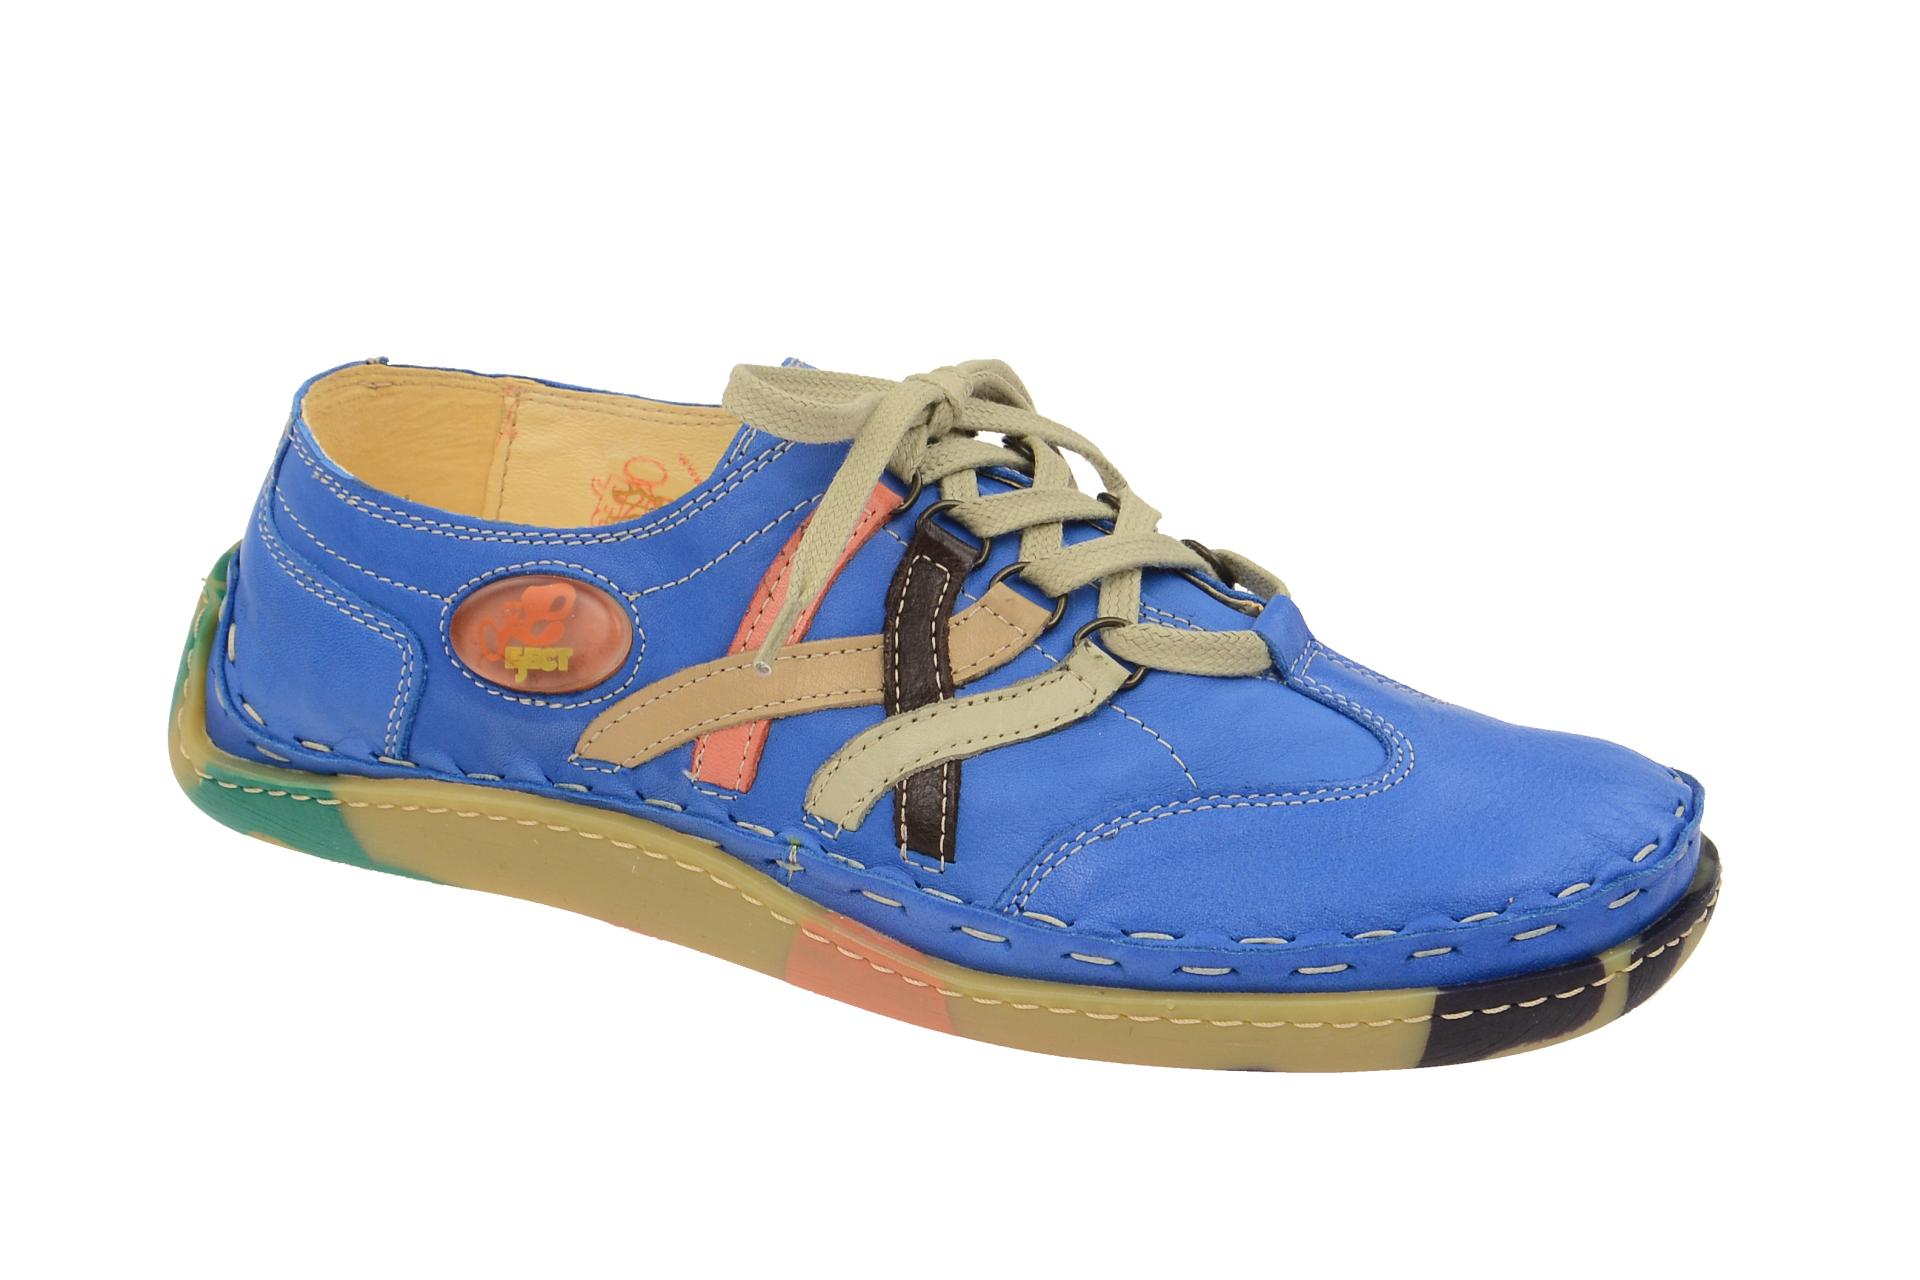 new product ad24c 47284 Eject Schuhe eJECT blau 7557